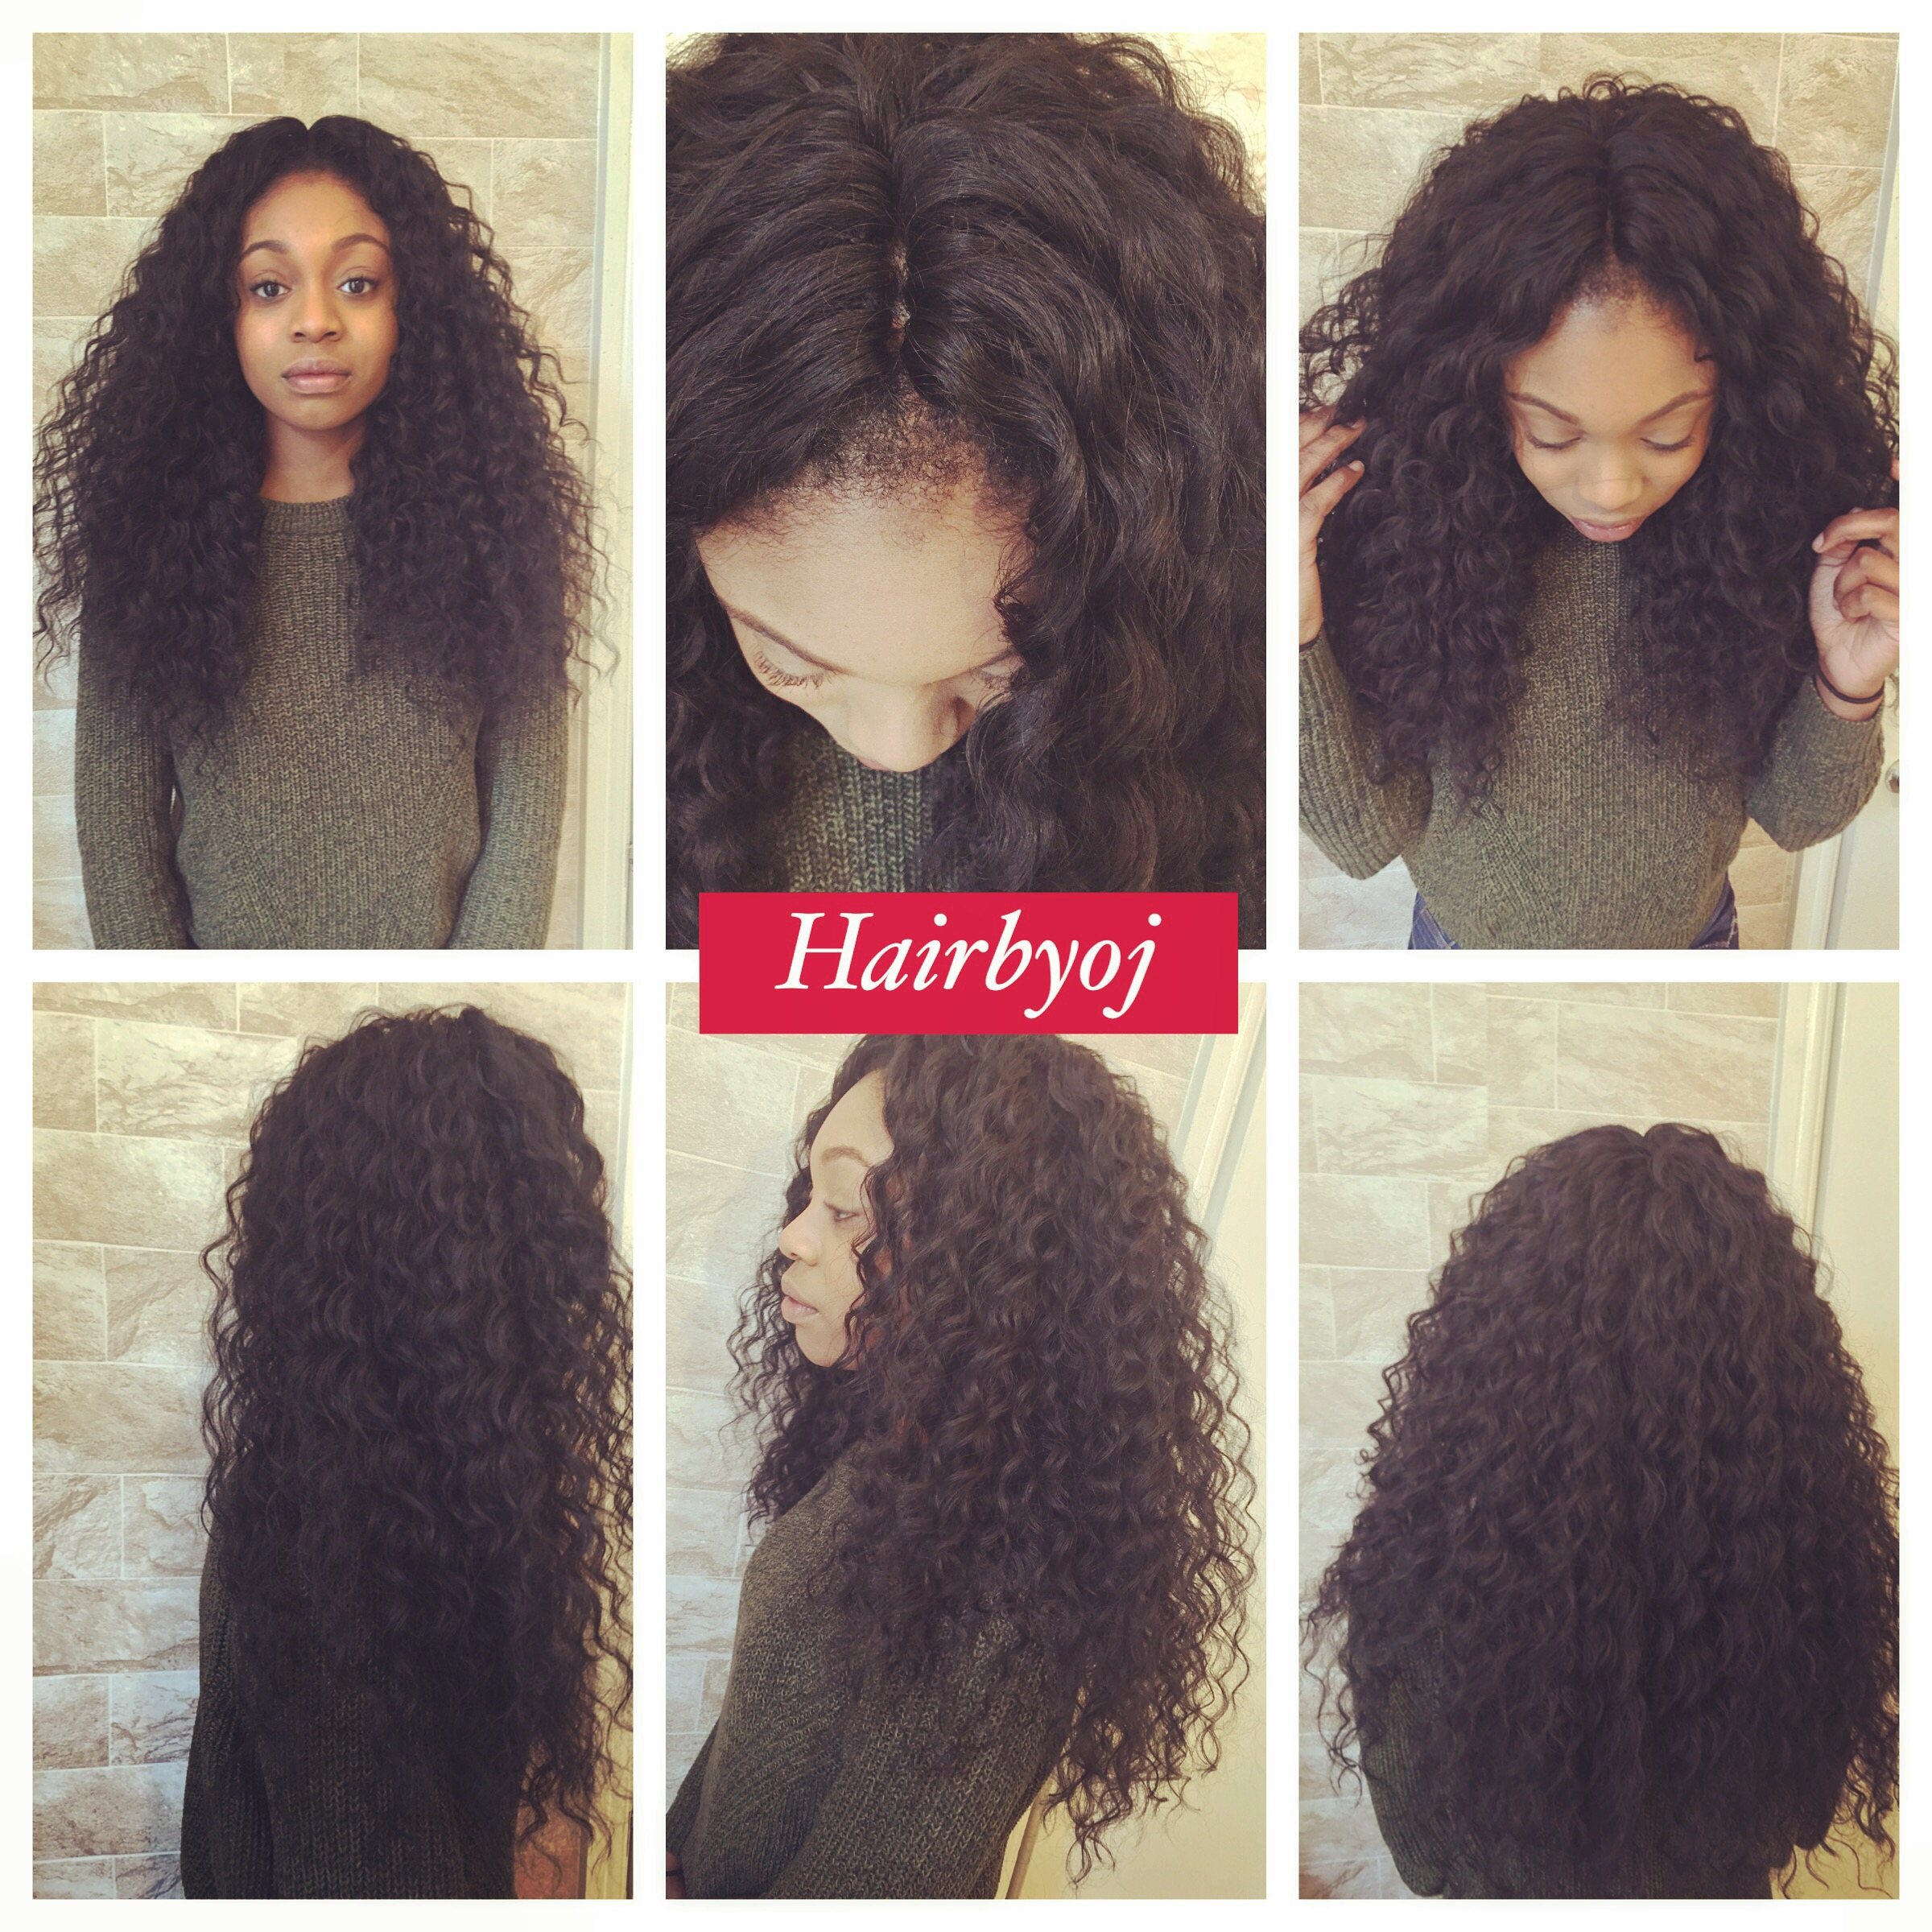 Crochet Braids With Leave Out : crochet braids with knotless middle parting and layers. No leave out ...